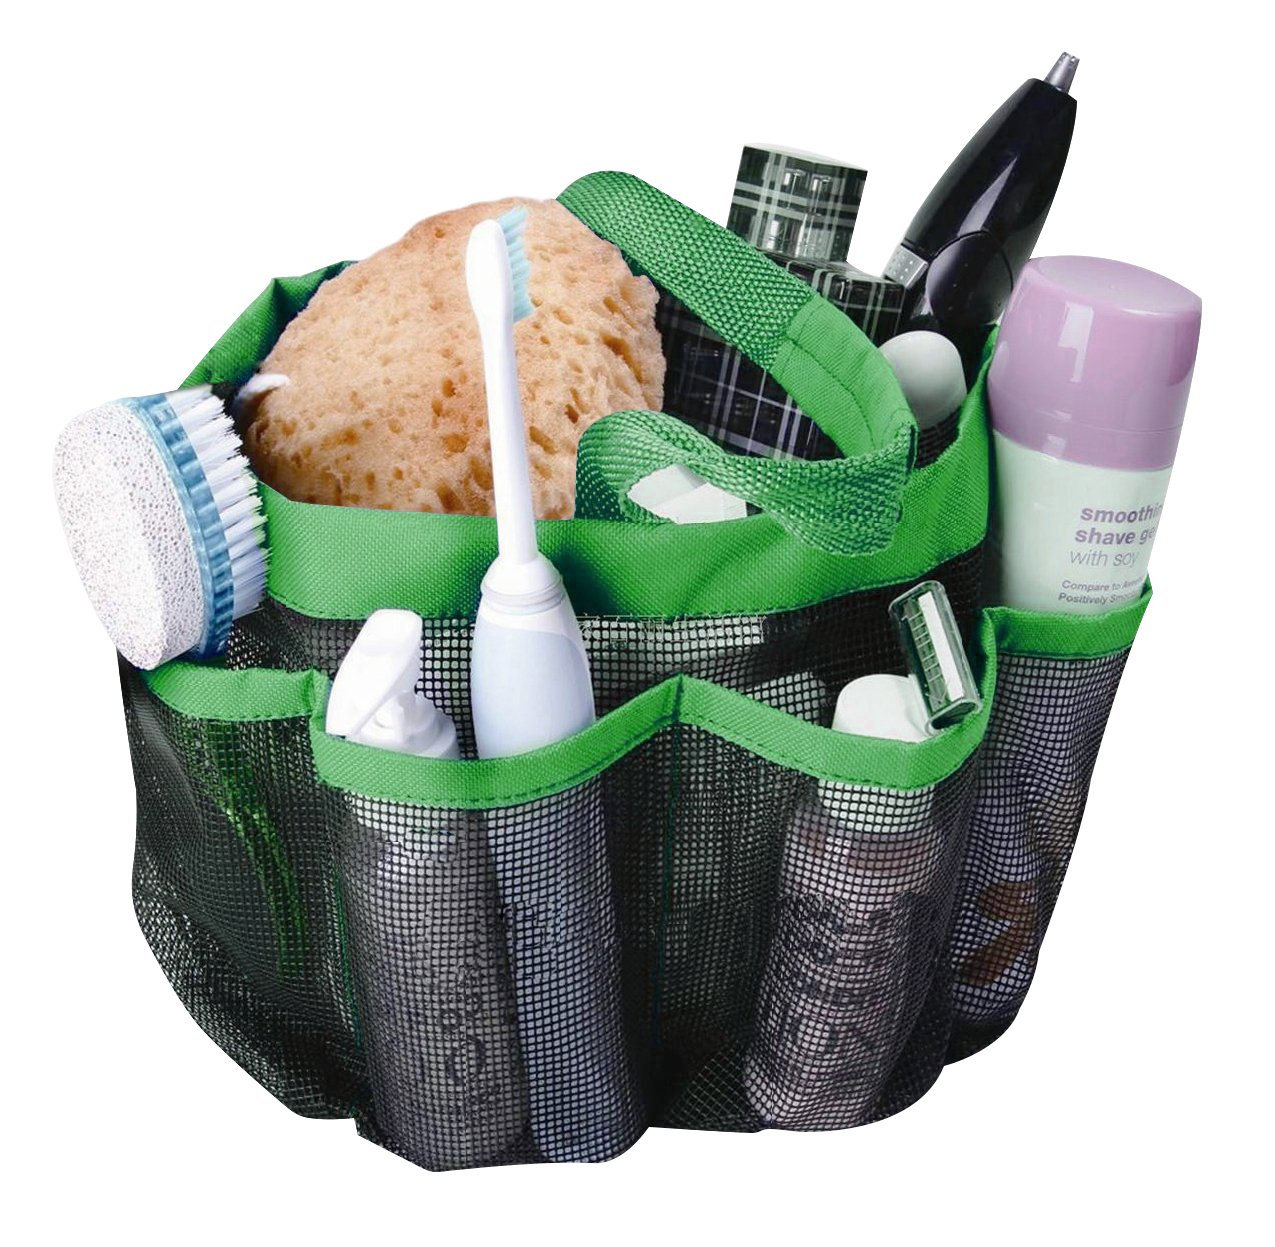 9035d3e10773 If you re living in the dorms a shower caddy is a must buy. It also helps  keep all your bathroom stuff organized and in one place.